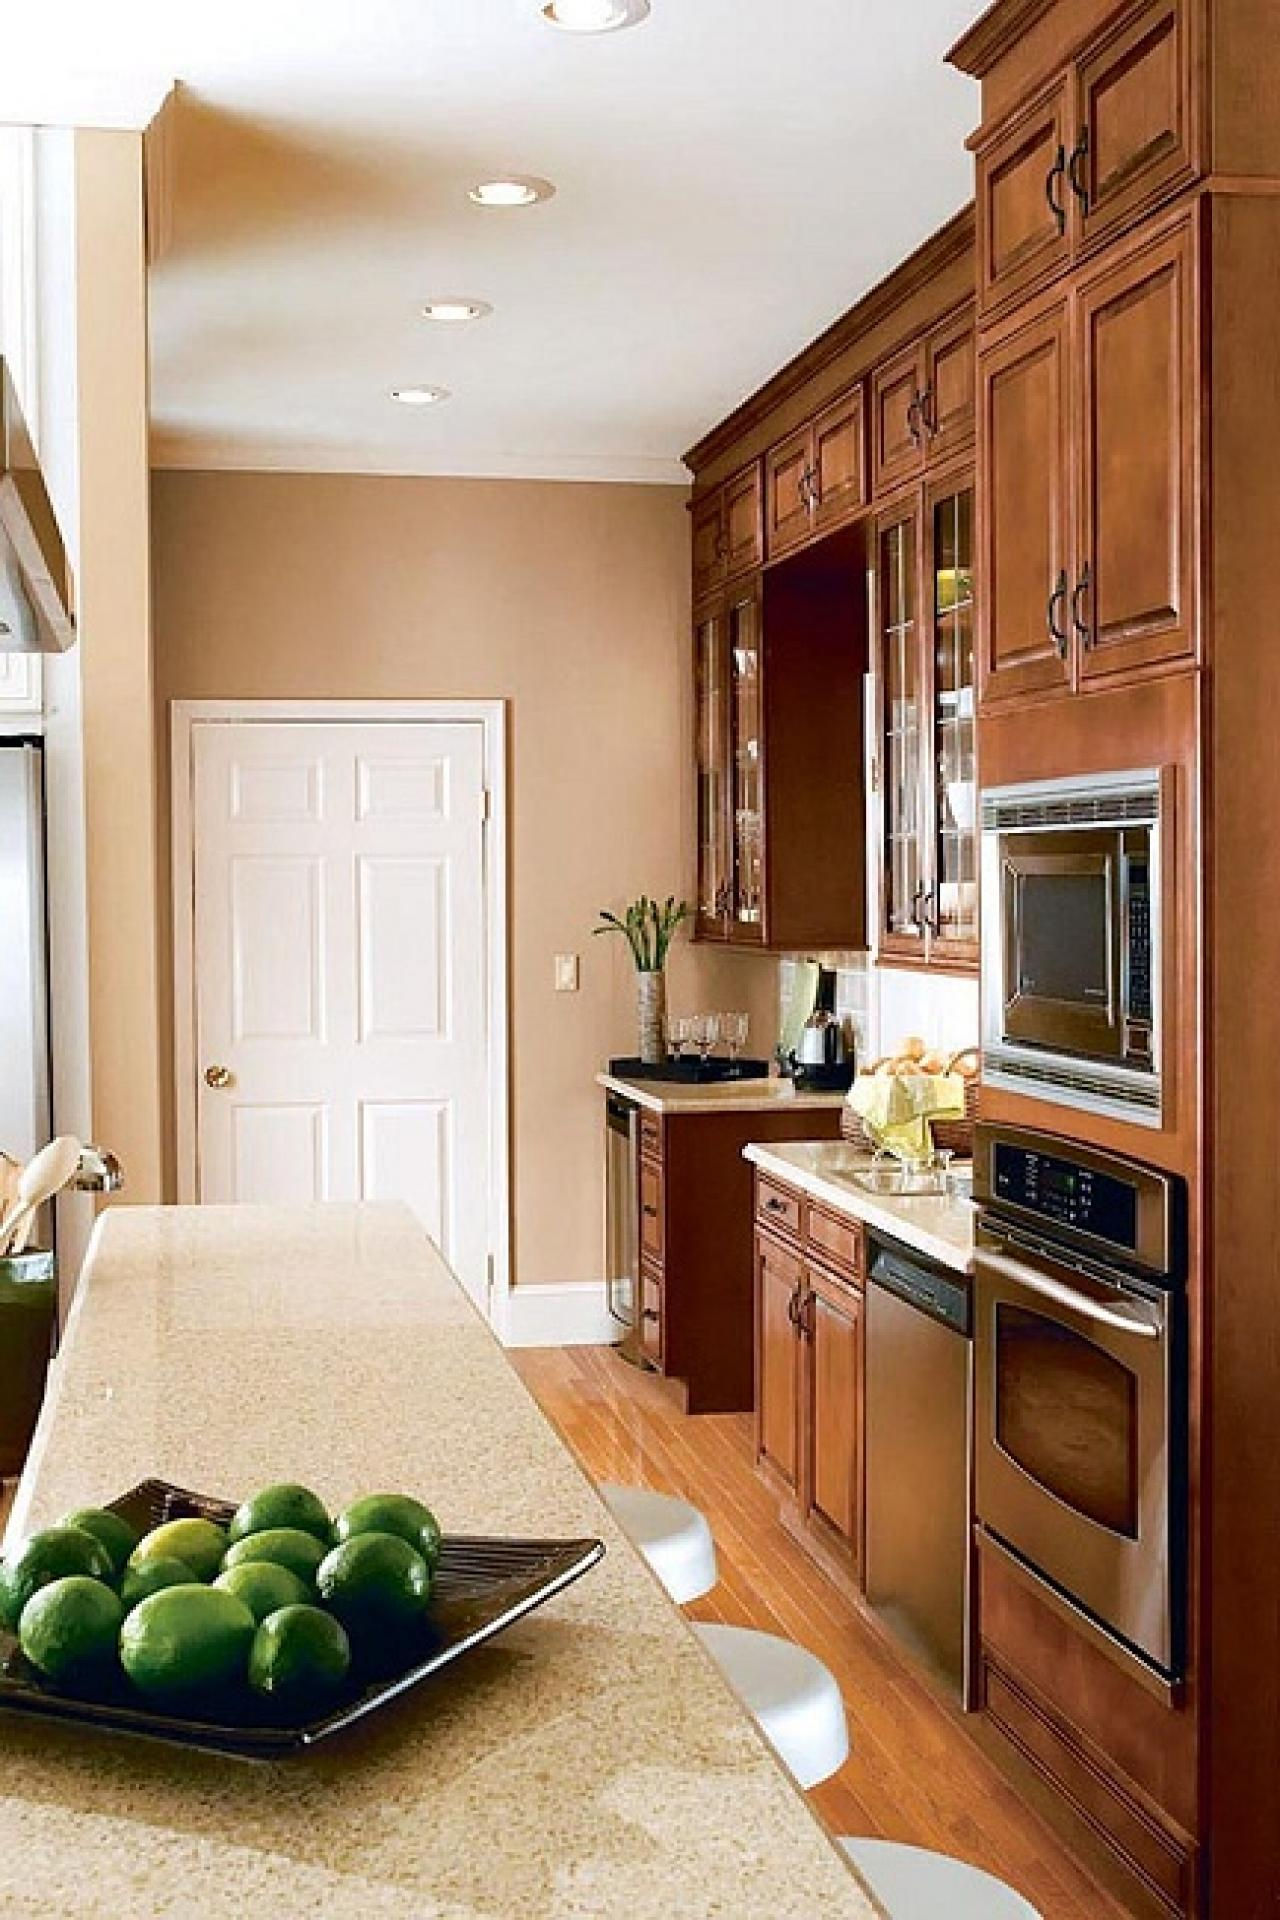 best paint color for kitchen with dark cabinets kitchen_vertical_colors_bring_out_best3 QFEMNKE